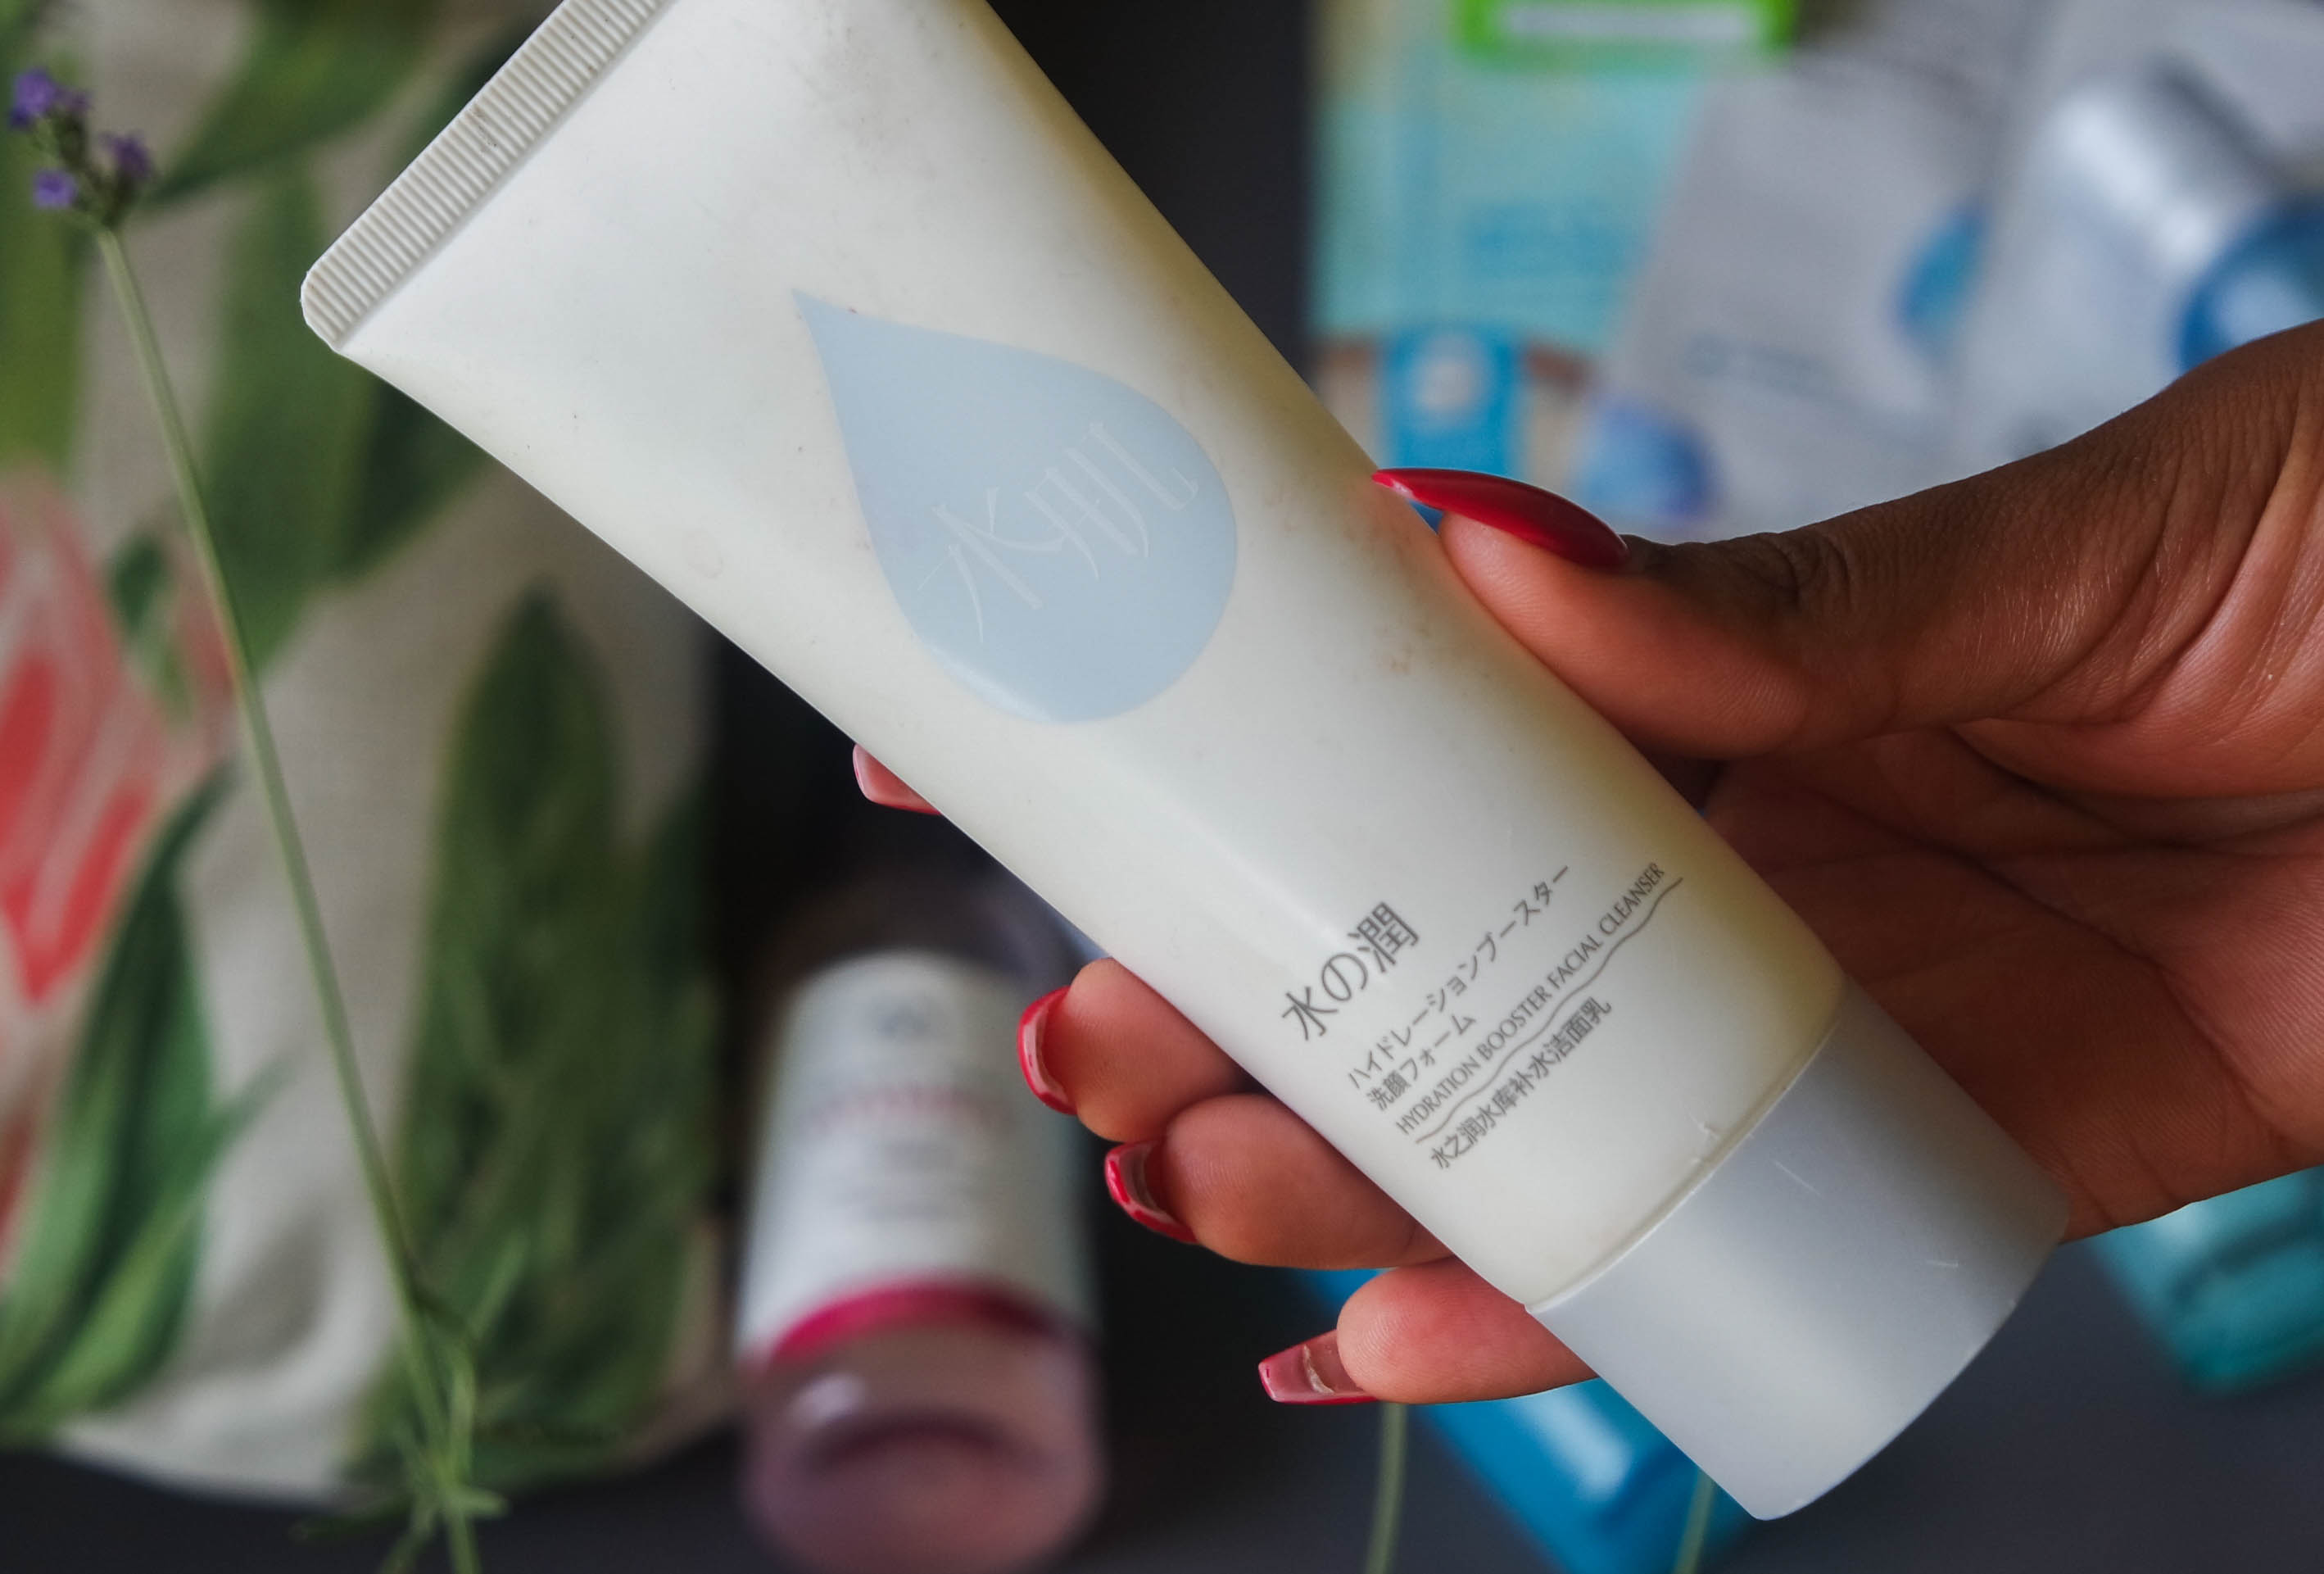 Miniso hydrating cleanser